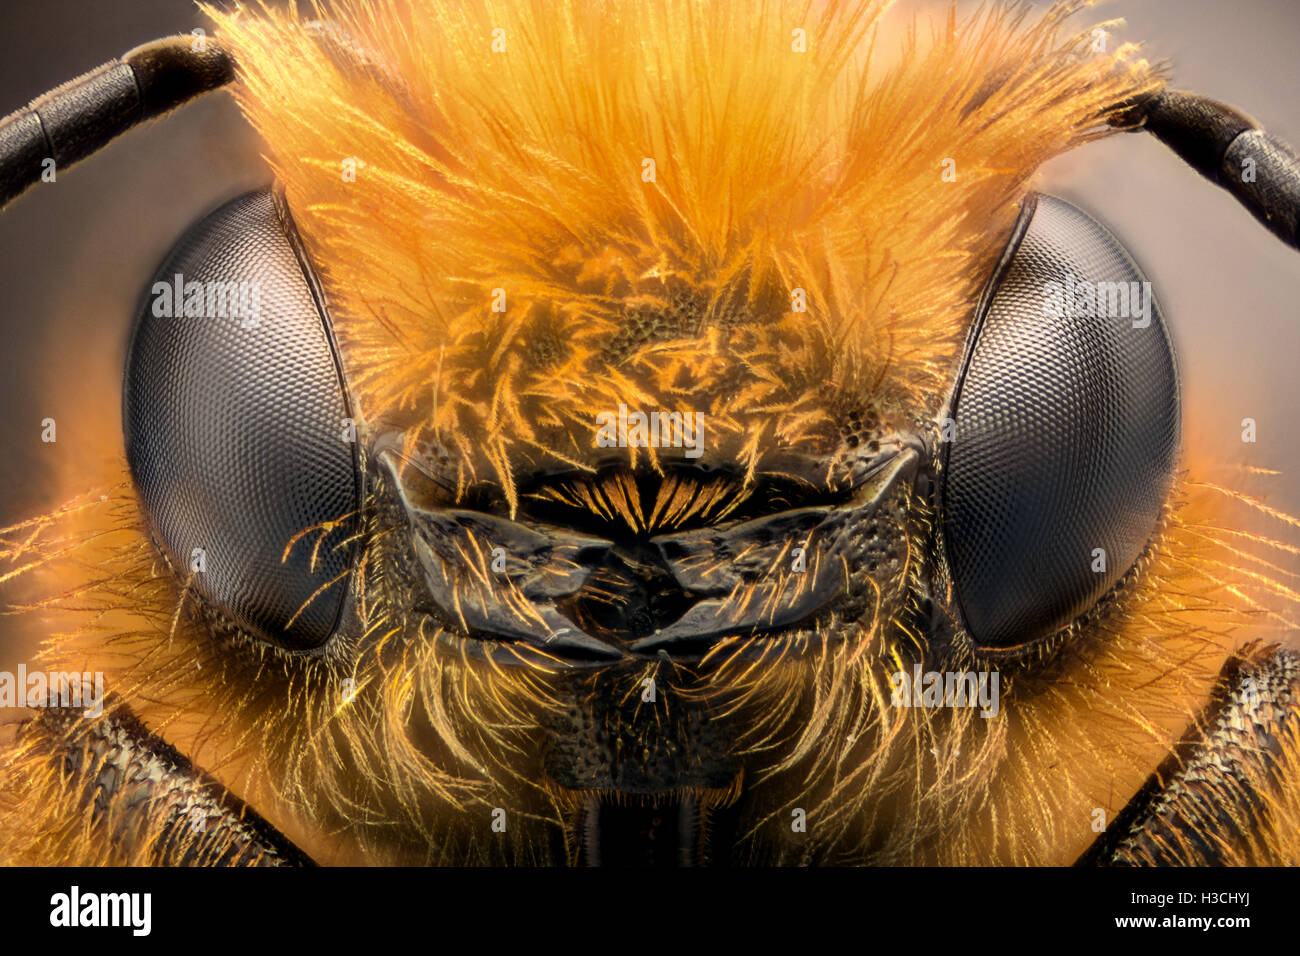 Extreme magnification - Solitaire Bee, Megachilidae - Stock Image